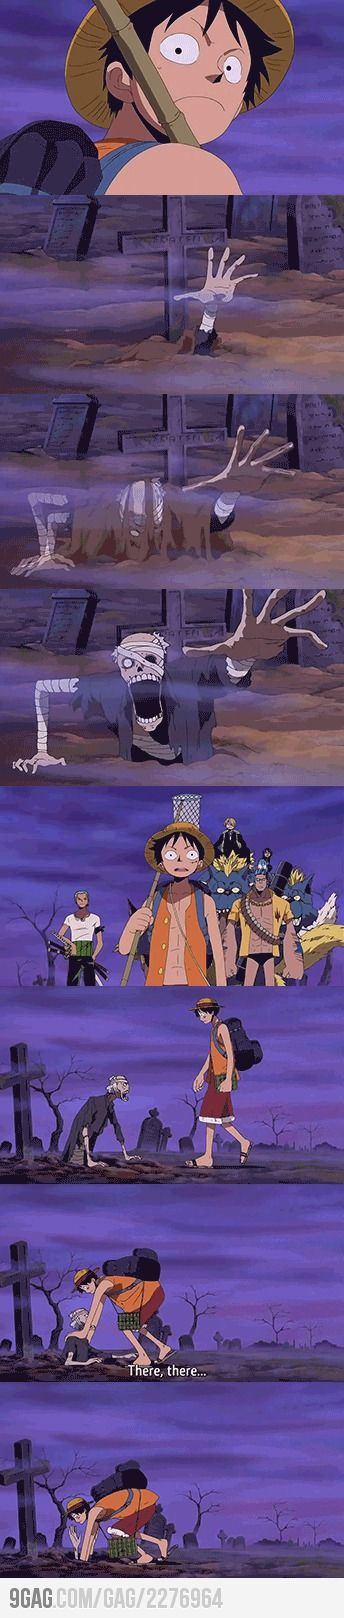 Zombies' apocalypse? No problem, there's Rufy XD #OnePiece